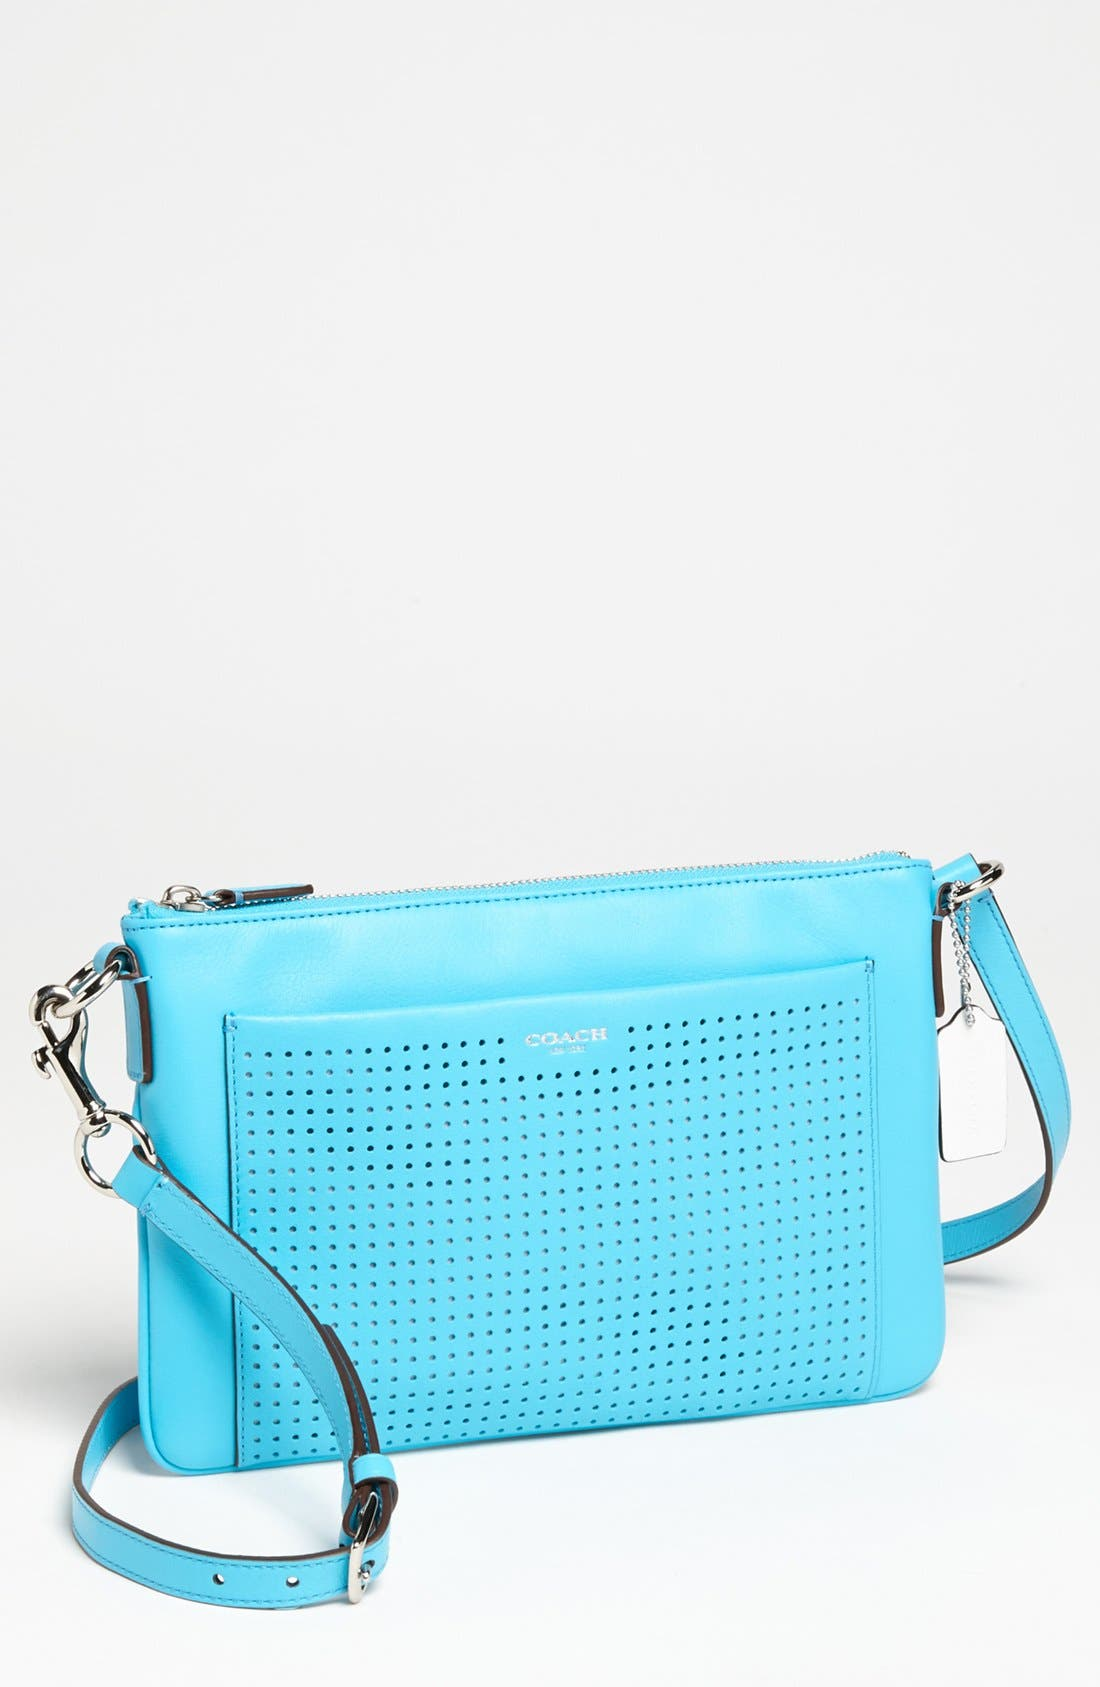 Alternate Image 1 Selected - COACH 'Legacy - Swingpack' Perforated Leather Crossbody Bag, Small